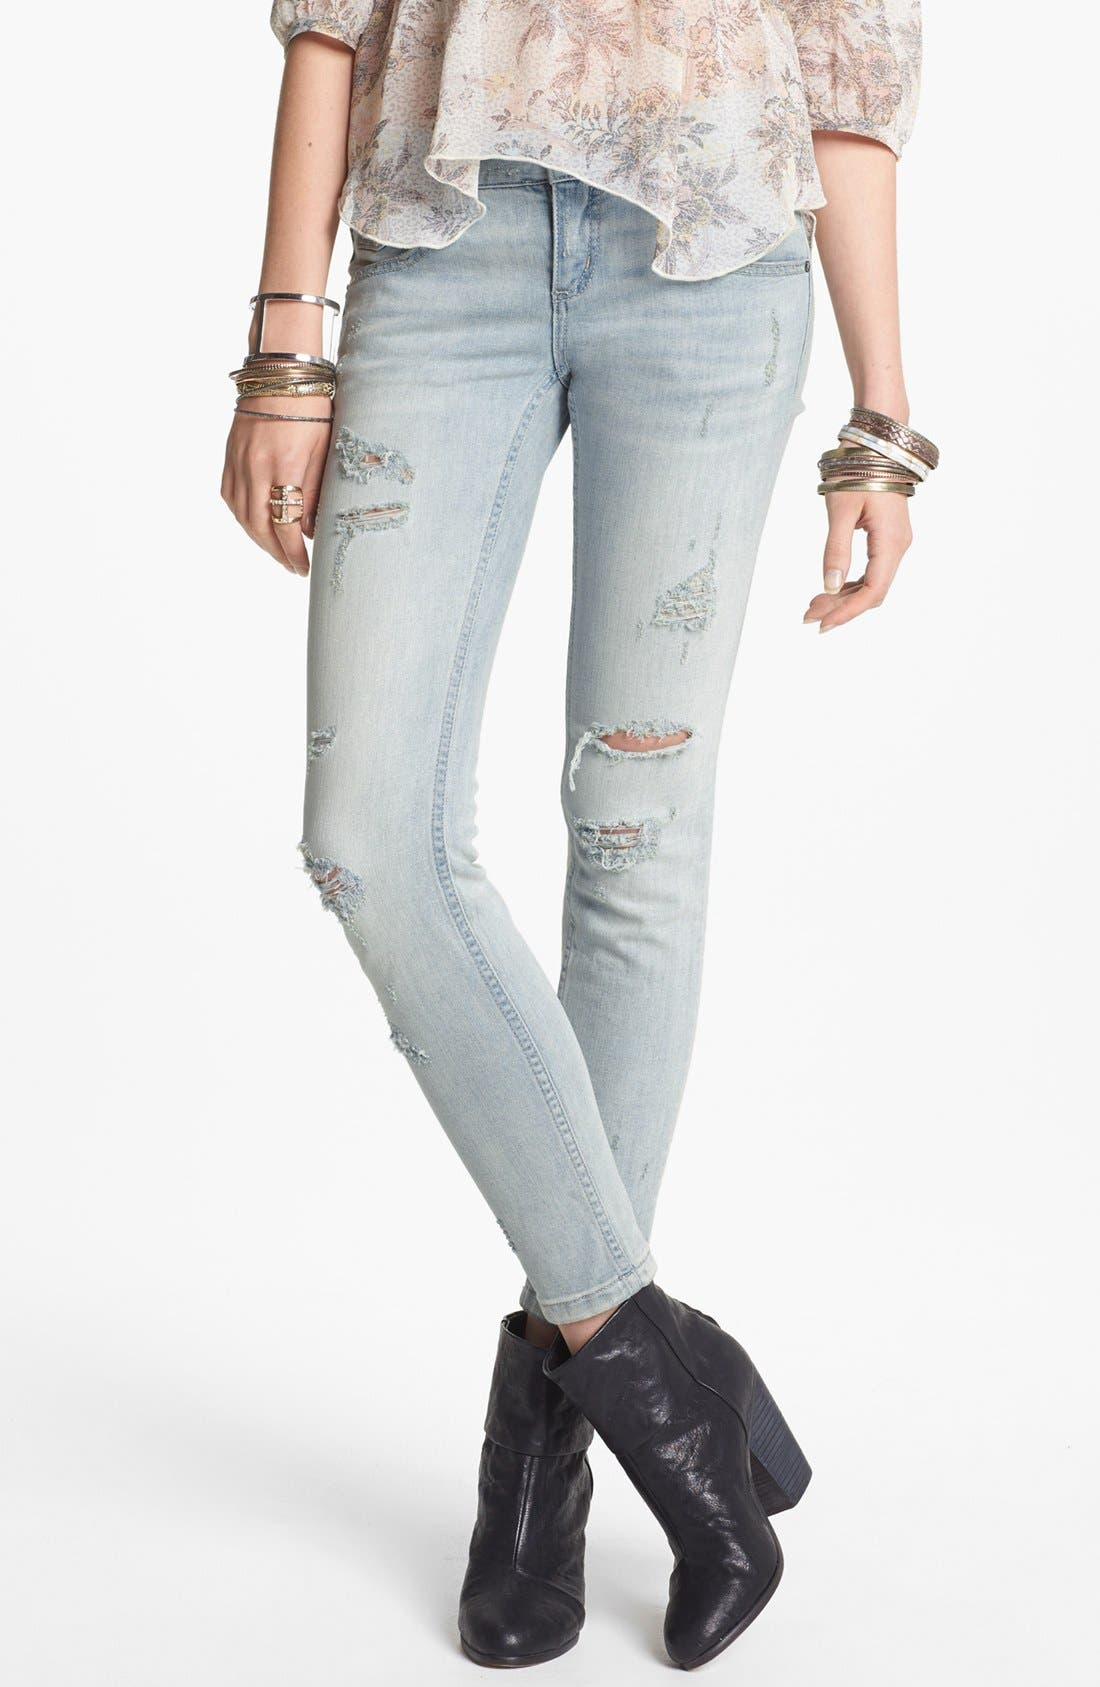 Alternate Image 1 Selected - Free People Destroyed Stretch Skinny Jeans (Light Wash)